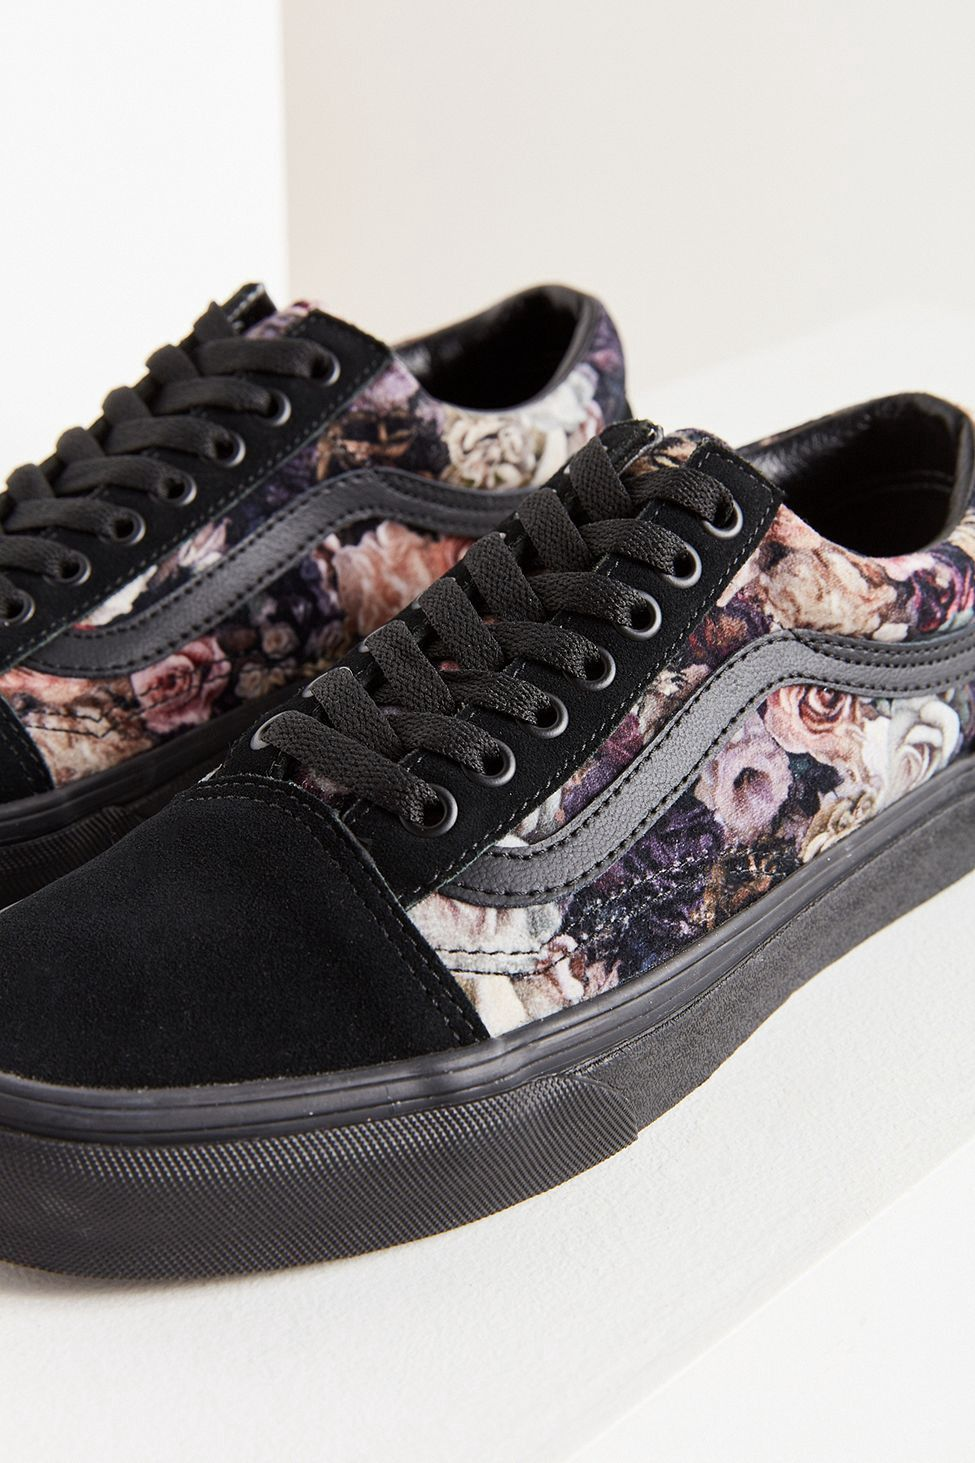 b2e28a1a035 Urban Outfitters Vans Floral Velvet Old Skool Sneaker - W 5 M 3.5 ...